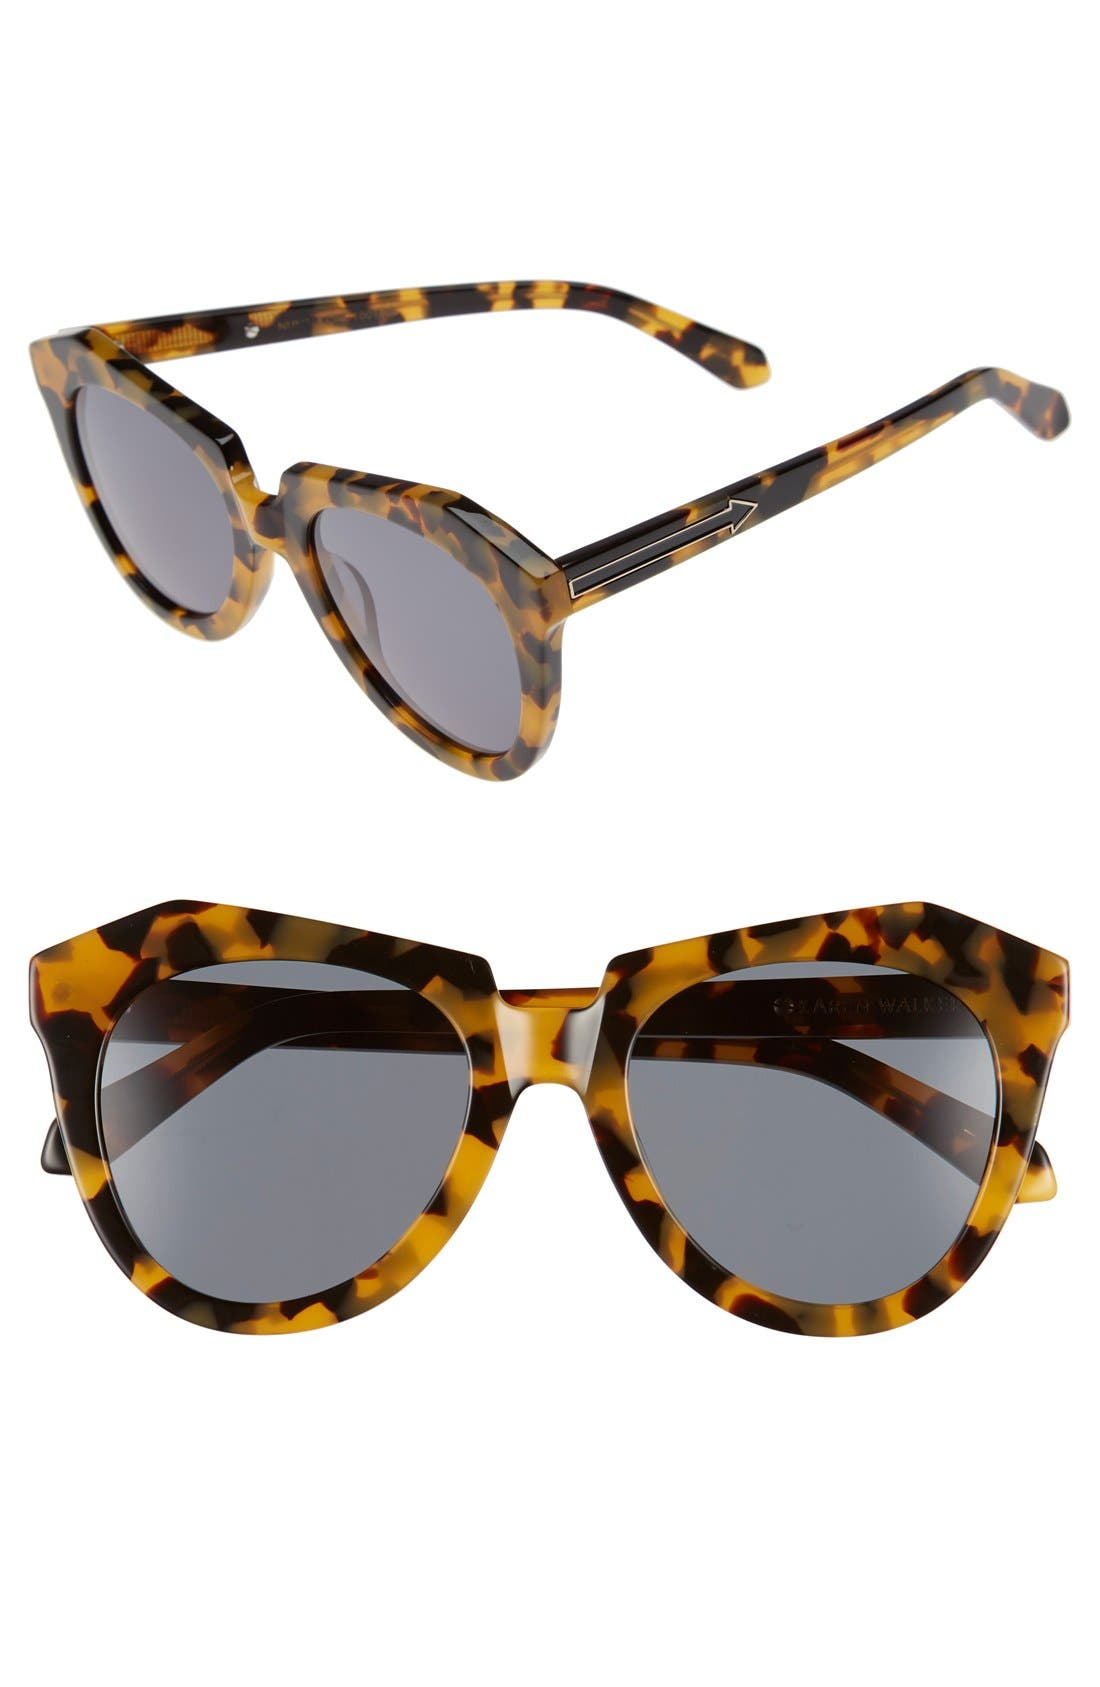 Alternate Image 1 Selected - Karen Walker 'Number One' 50mm Sunglasses